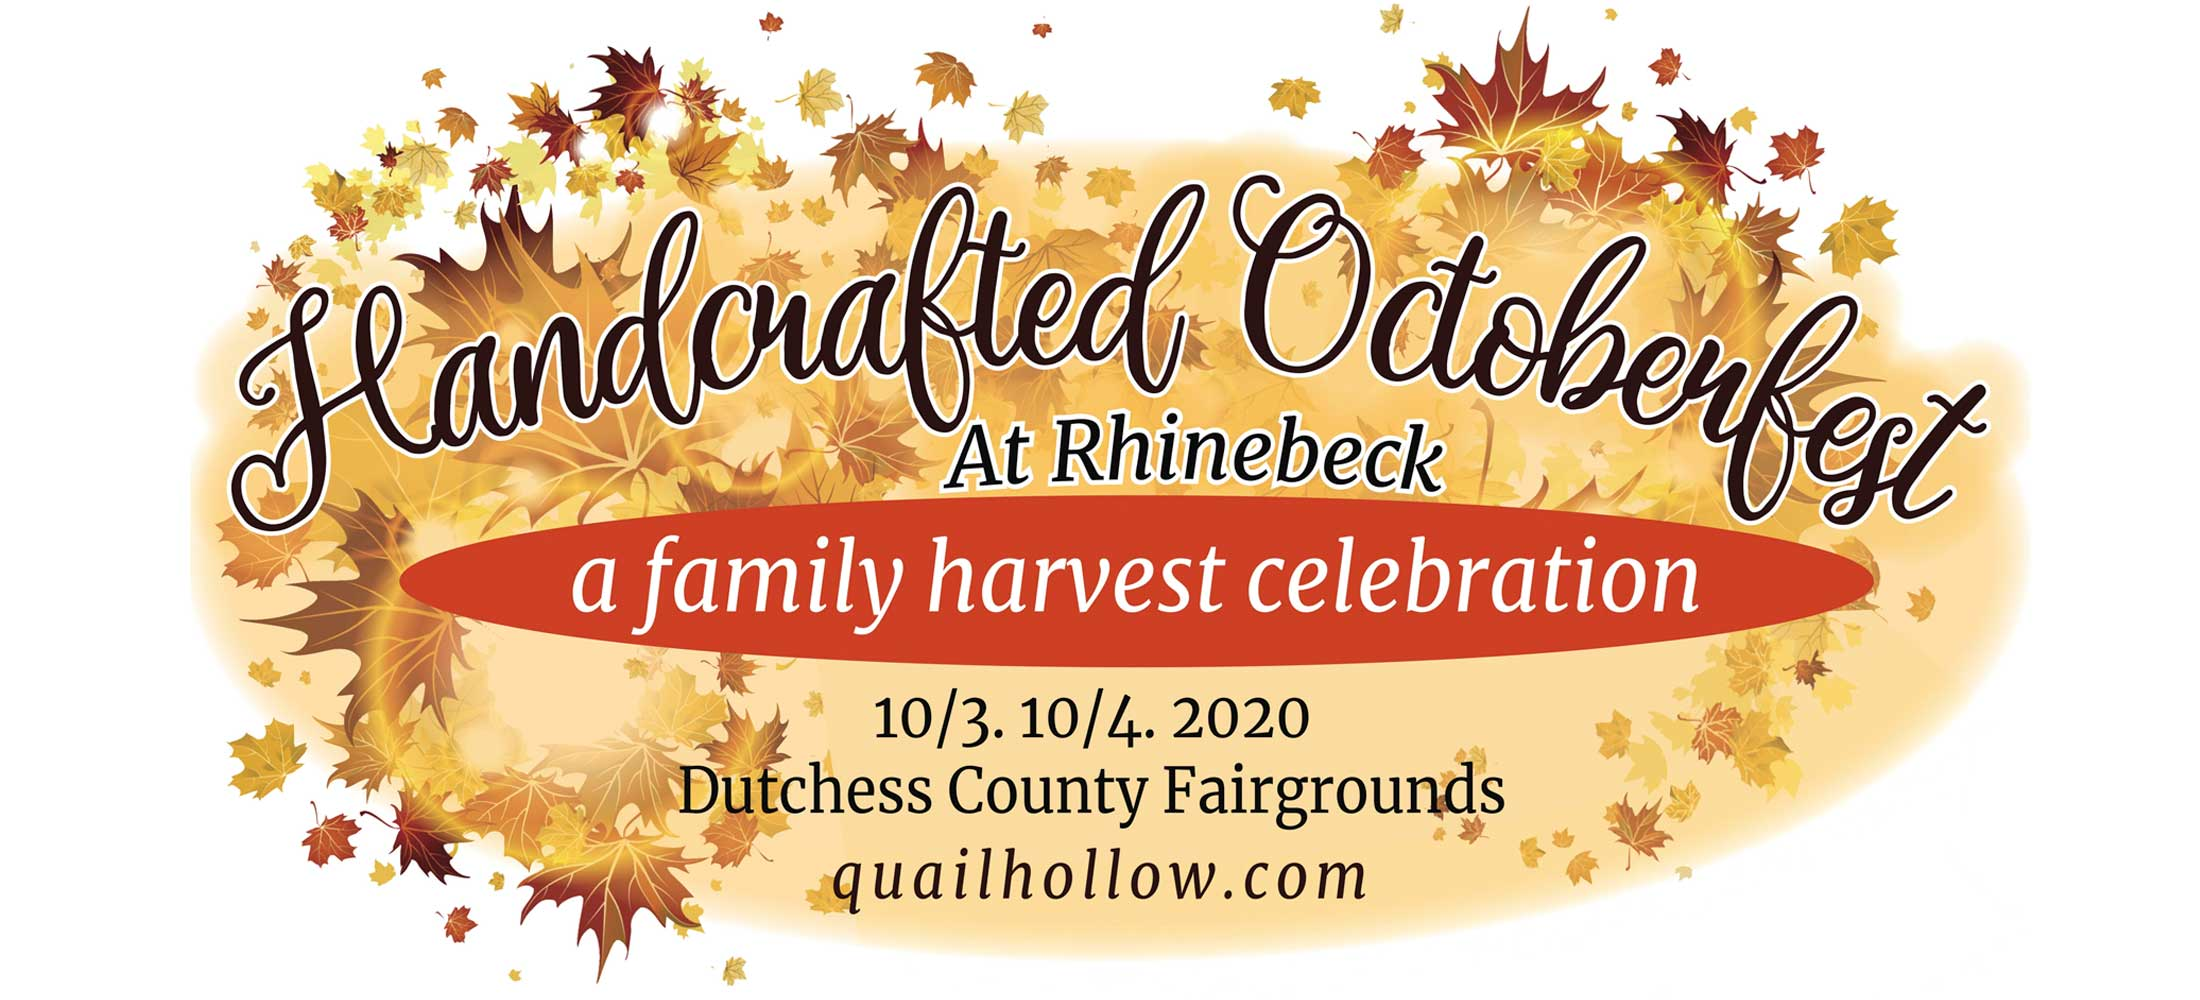 Handcrafted Octoberfest at Rhinebeck